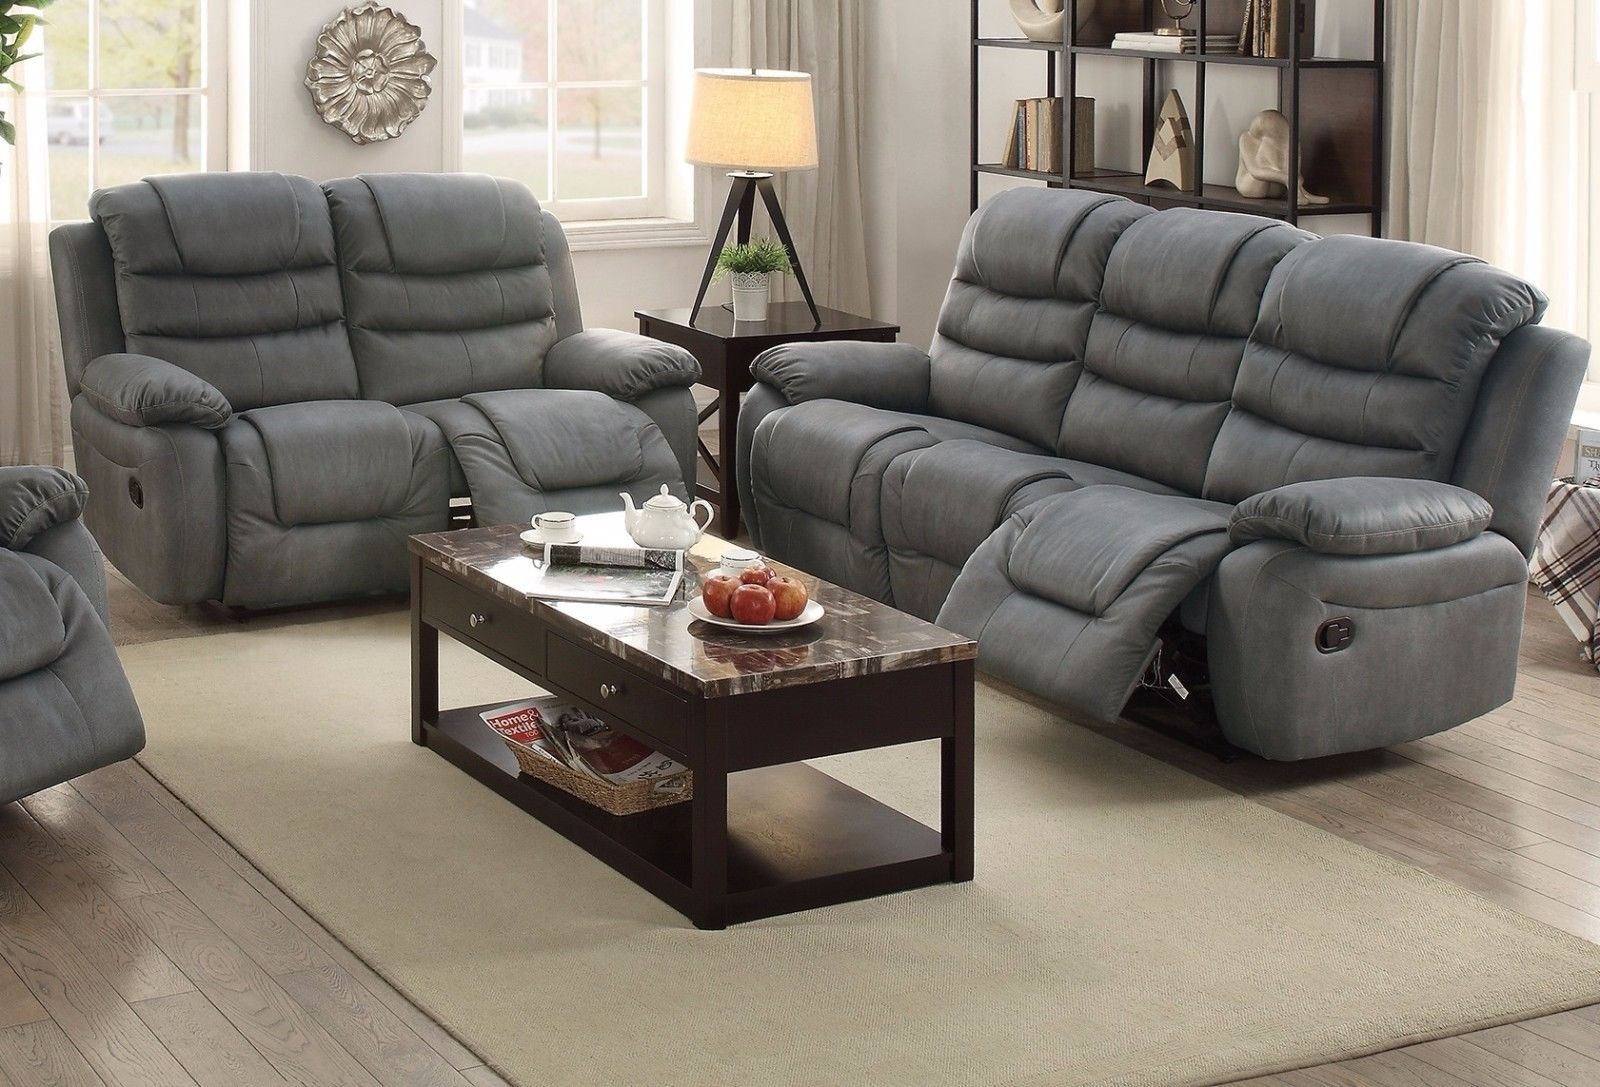 3 PCs Slate Grey Breathable Leatherette Recliner Loveseat Sofa Set